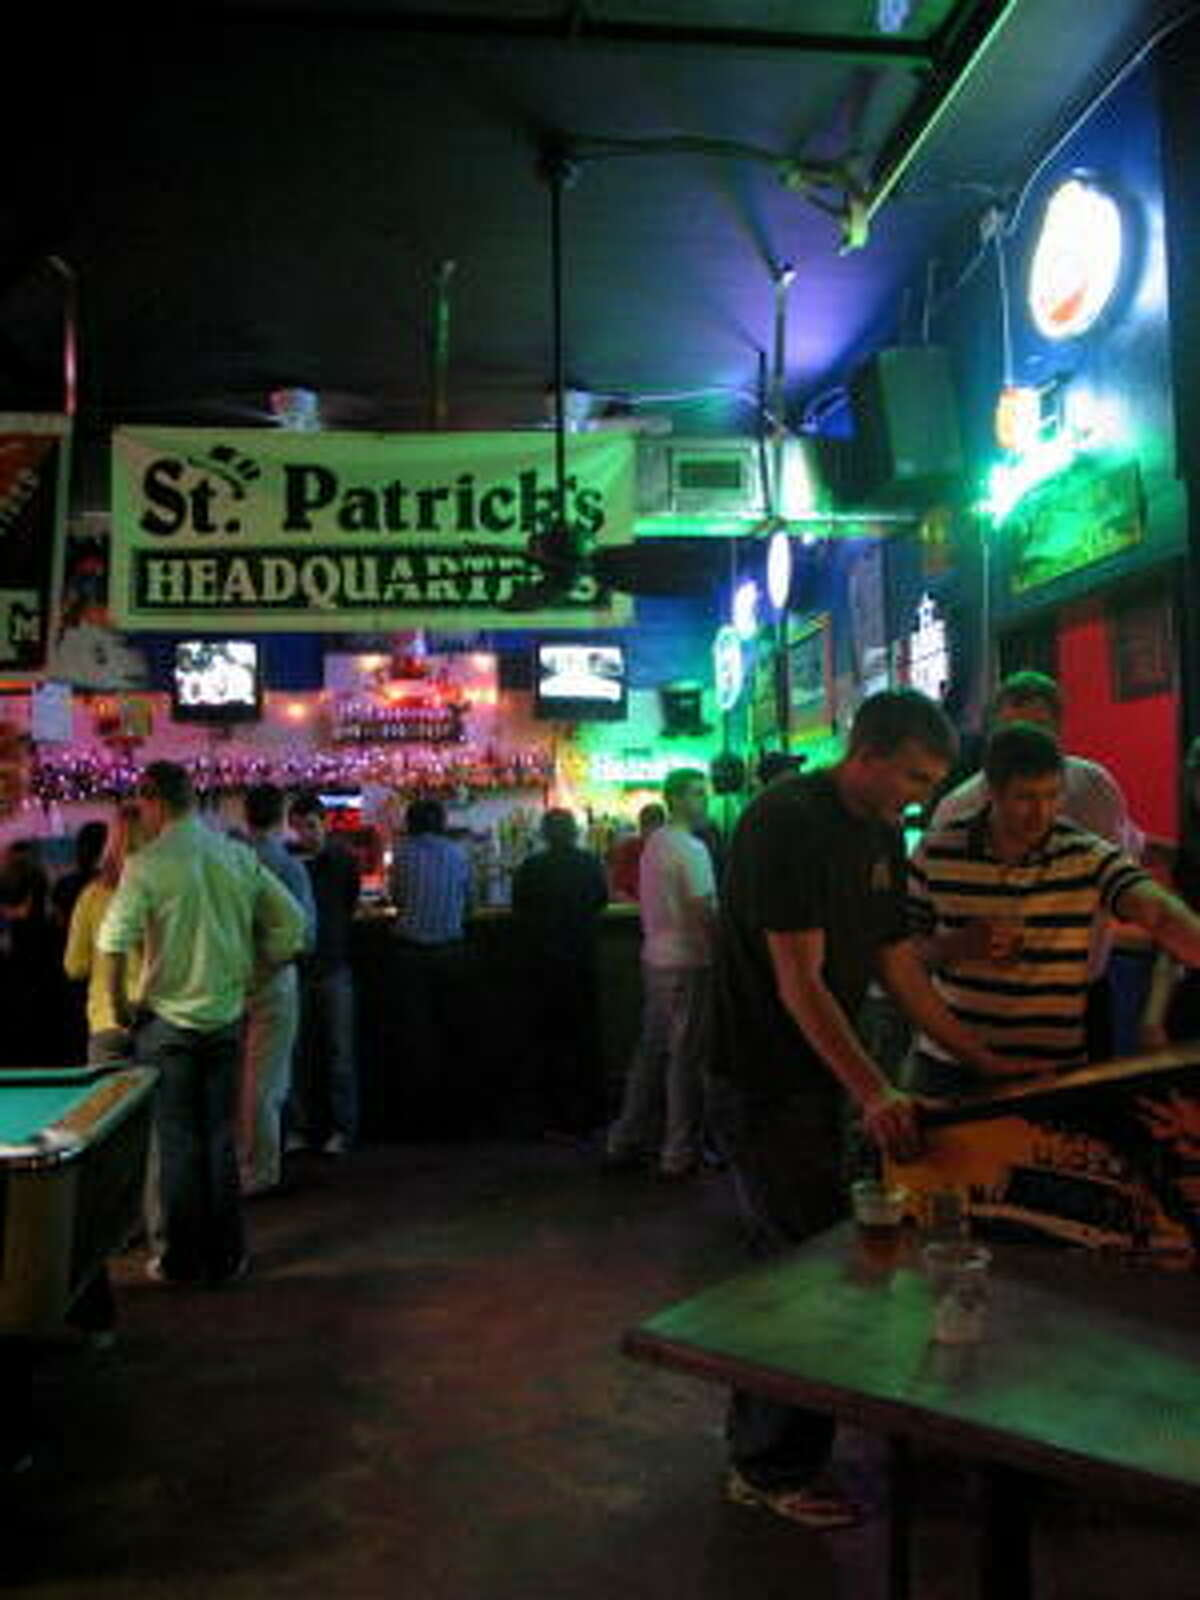 St. Arnold Brewery celebrated its Spring Bock Pub Crawl at a few bars in the Heights. Two stops were at 6th Street Pub, 2701 White Oak and Beer Island, 2631 White Oak.